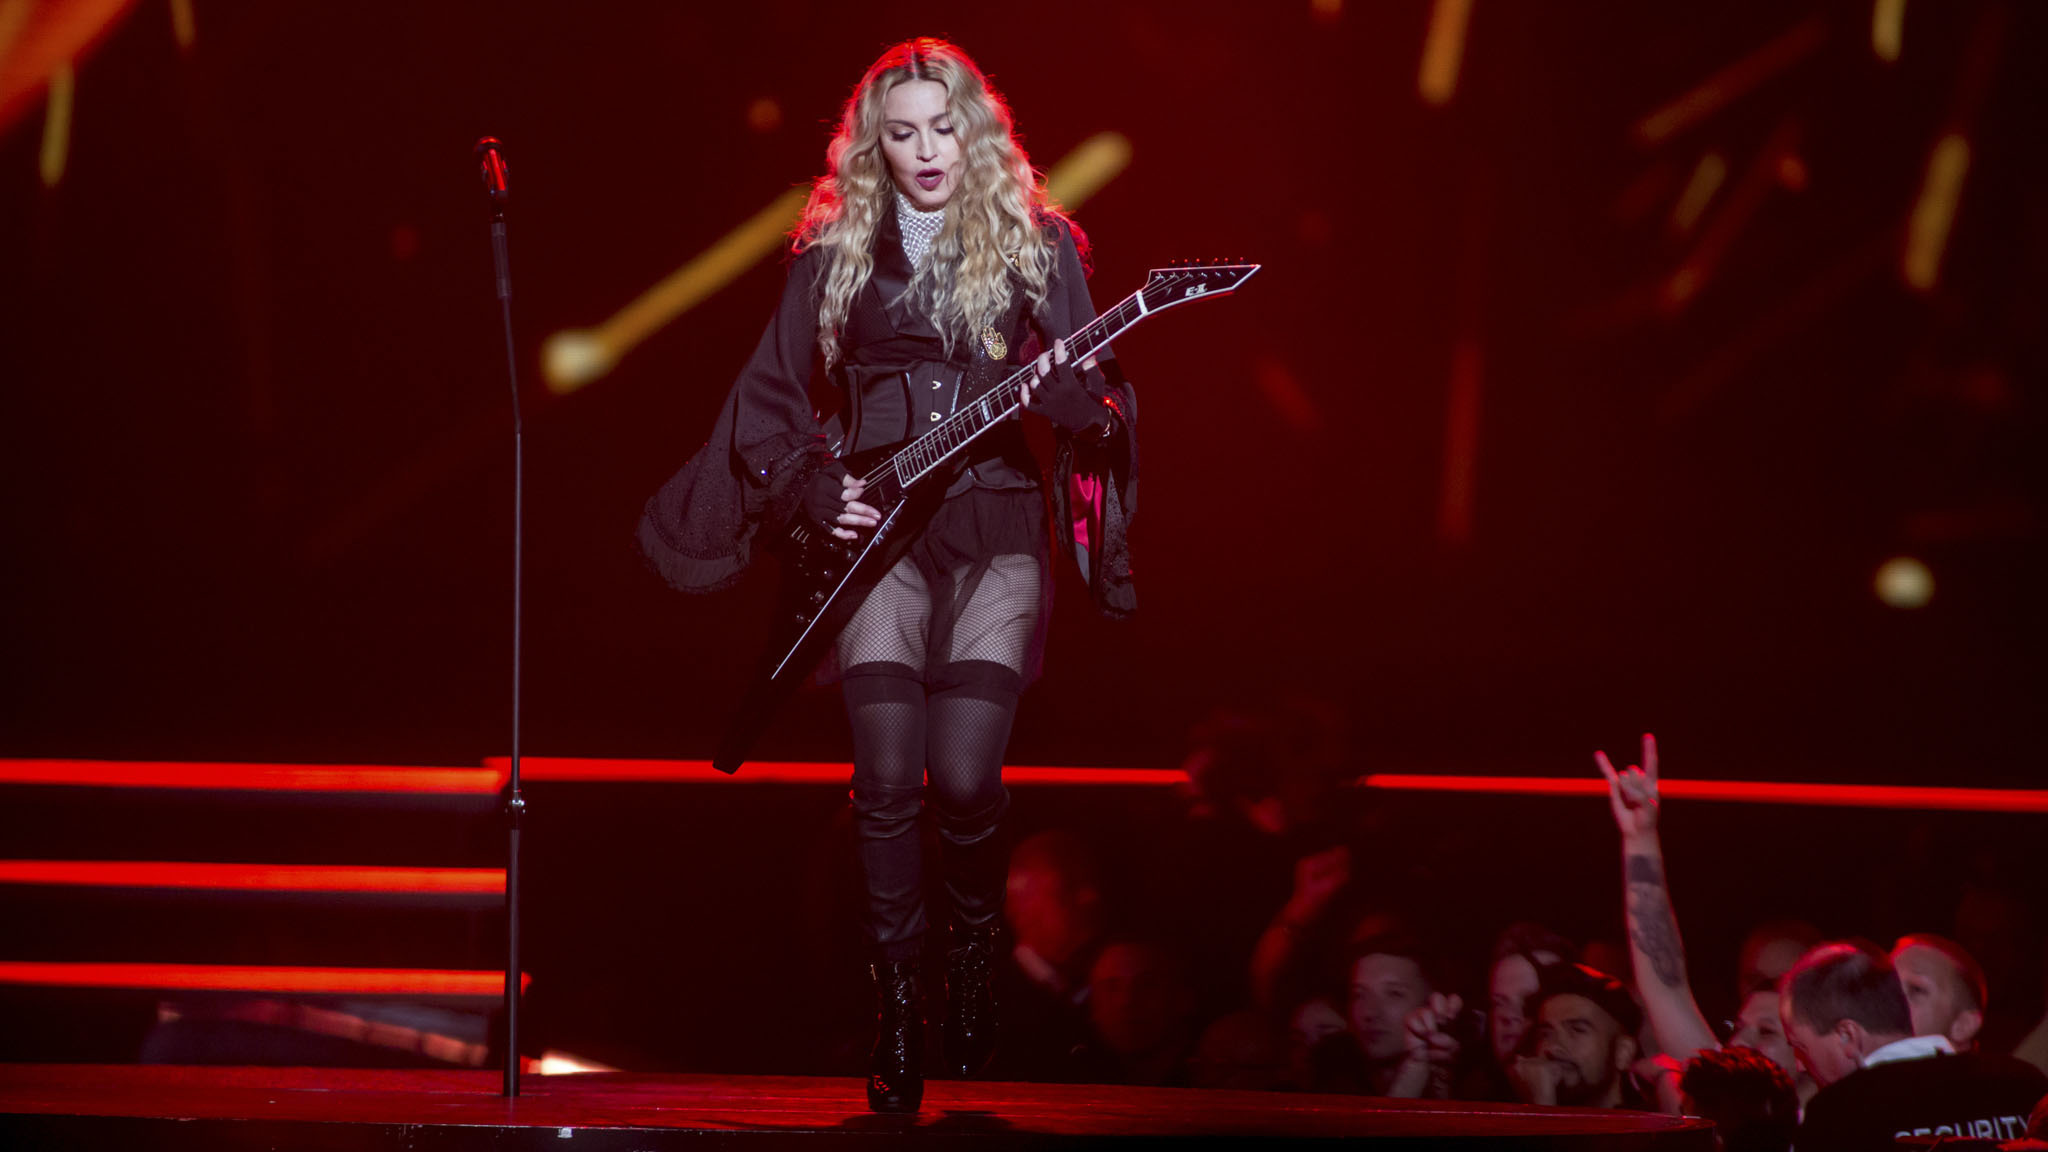 Madonna brought her Rebel Heart tour to the United Center on September 28, 2015.